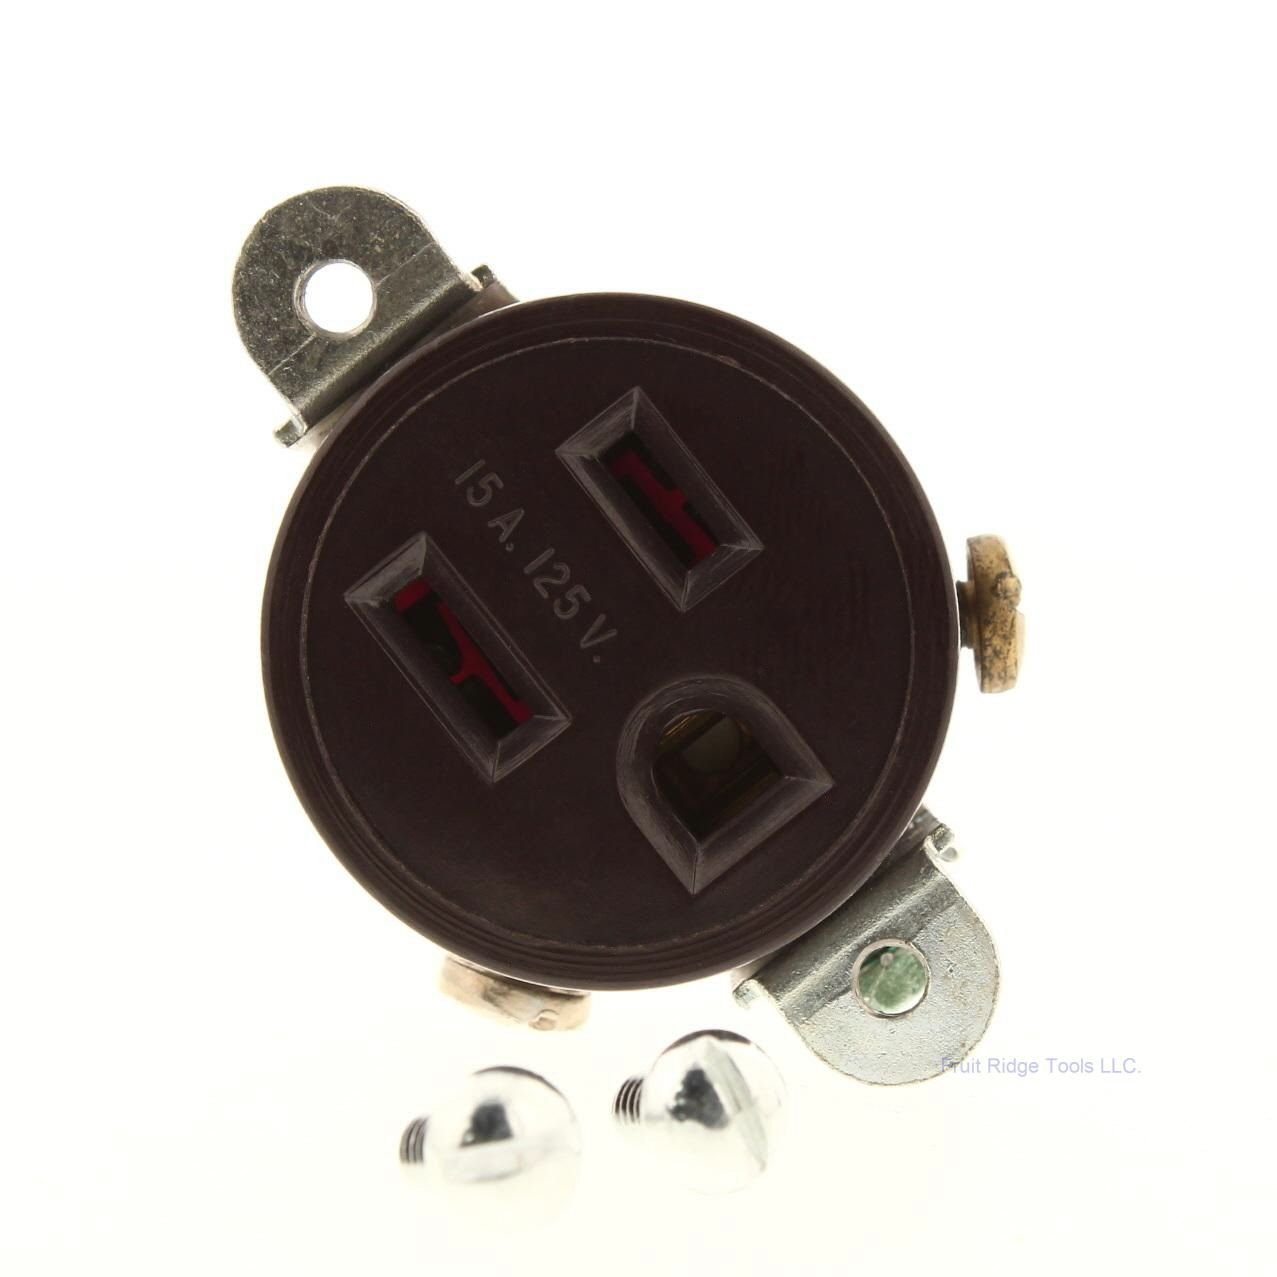 Legrand-Pass & Seymour 5258 Pass and Seymour 5258-W 15A 125V 5-15R Single Receptacle